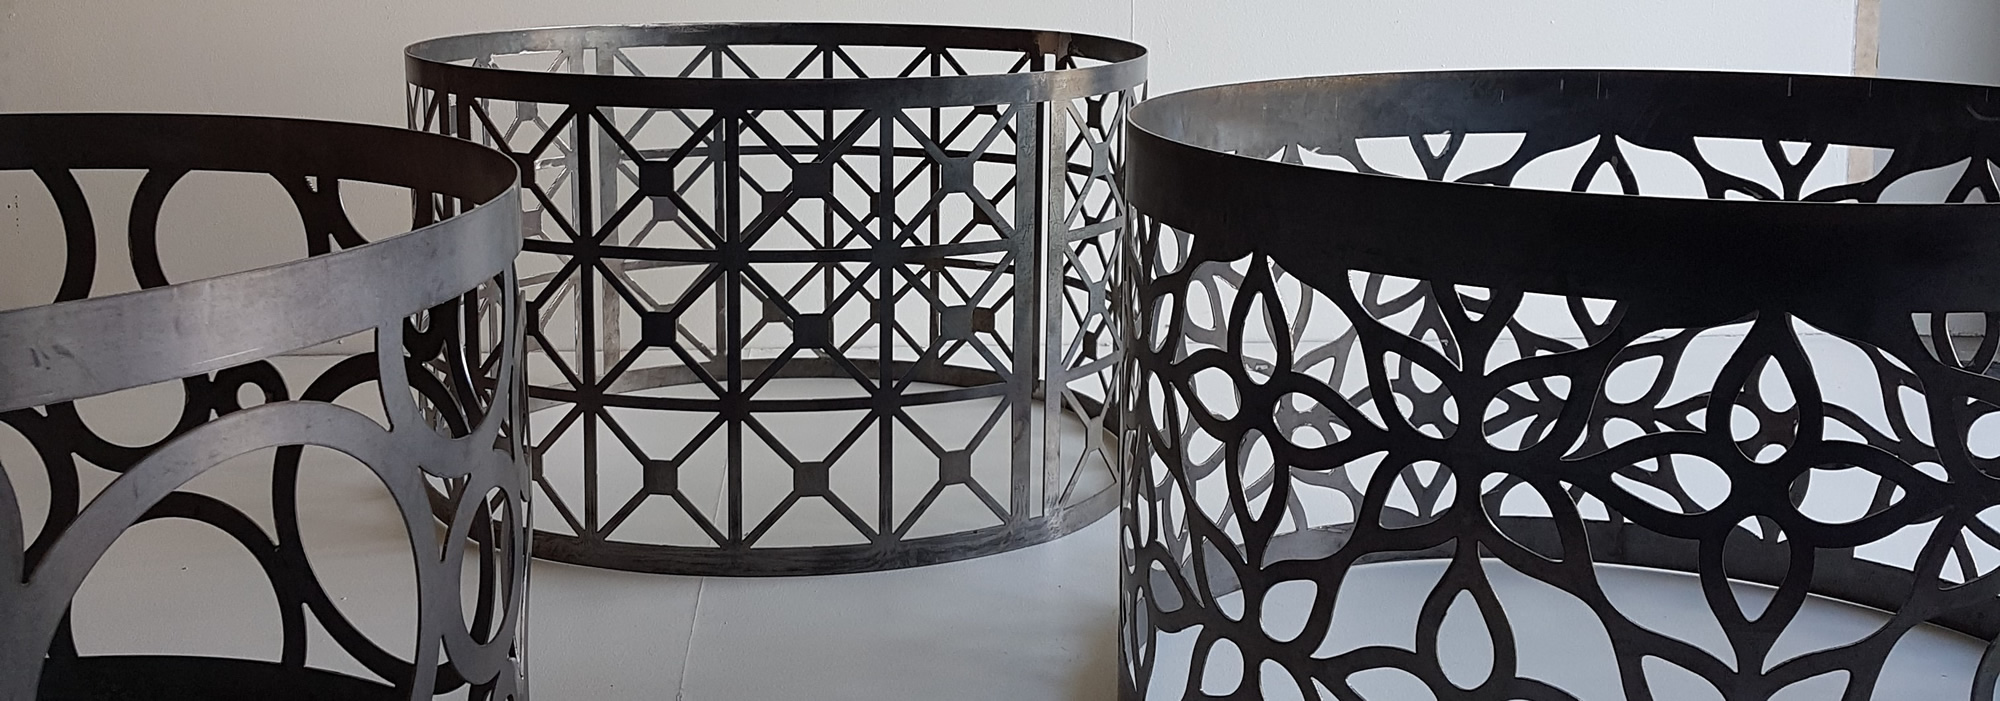 Metallica Steel Are Manufacturers Of Quality Plasma And Laser Cut Range Products Our Aim To Be The Leading Supplier Decor Is